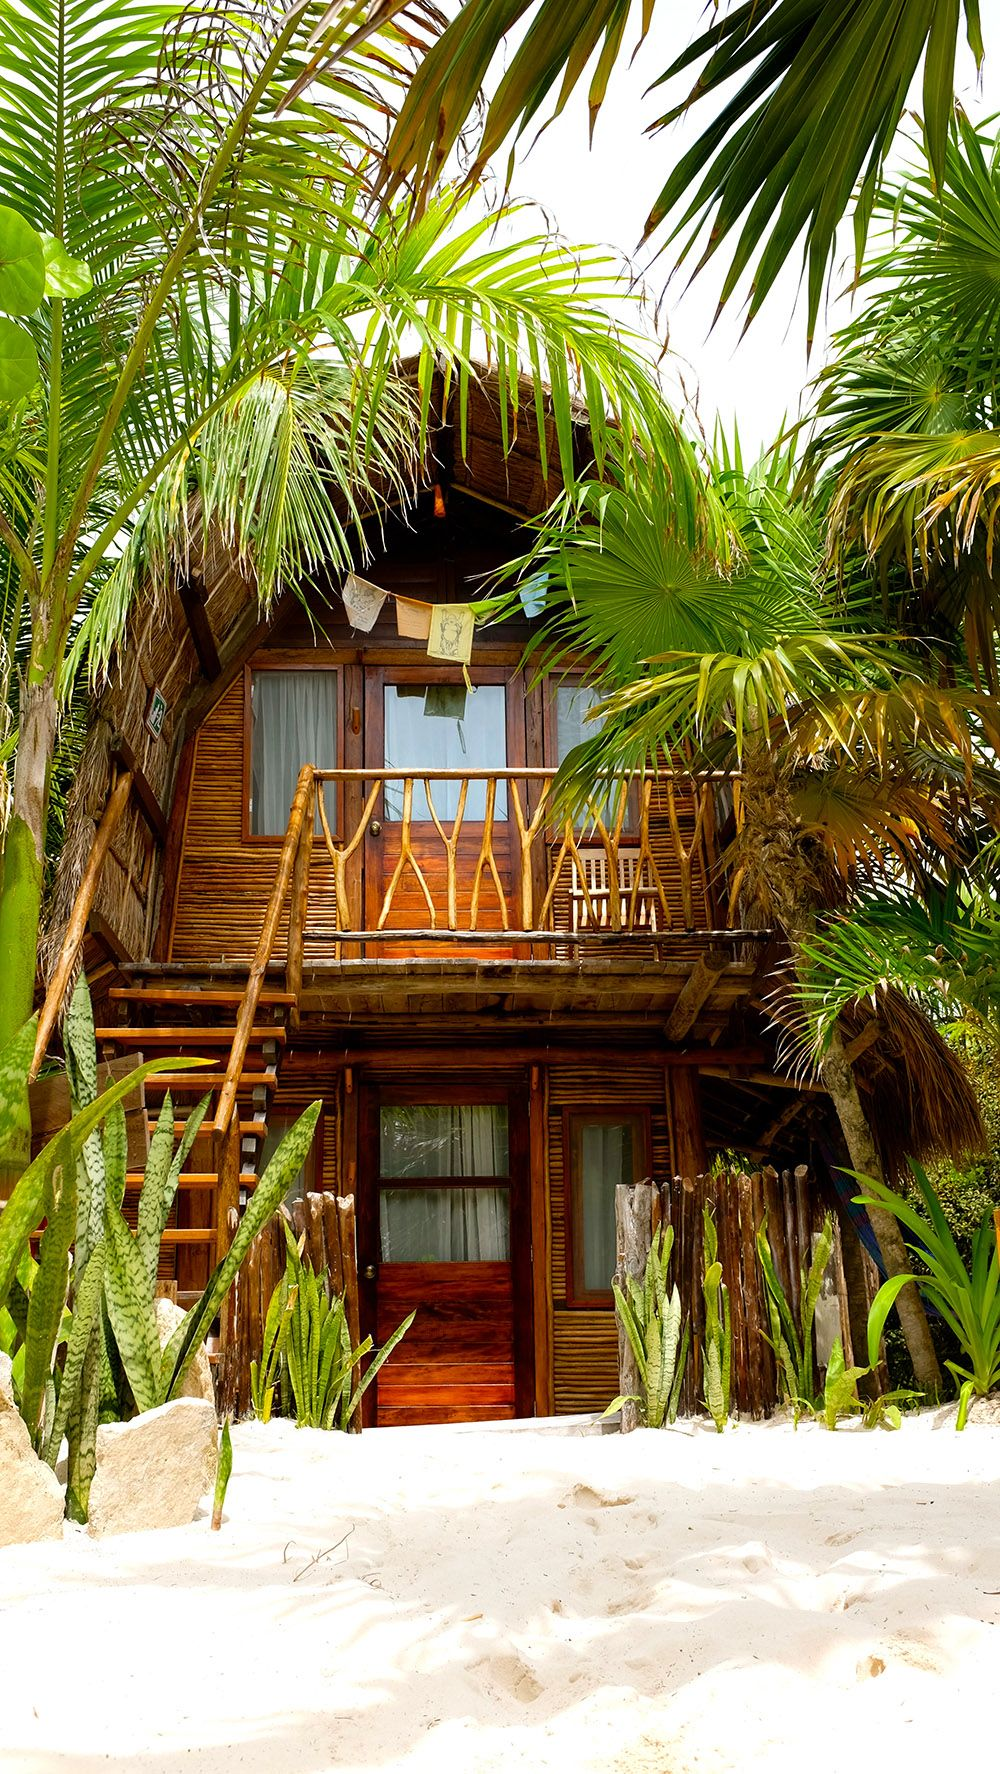 Ahau tulum bali hut ecological caribbean cabanas with for Cabanas en mexico